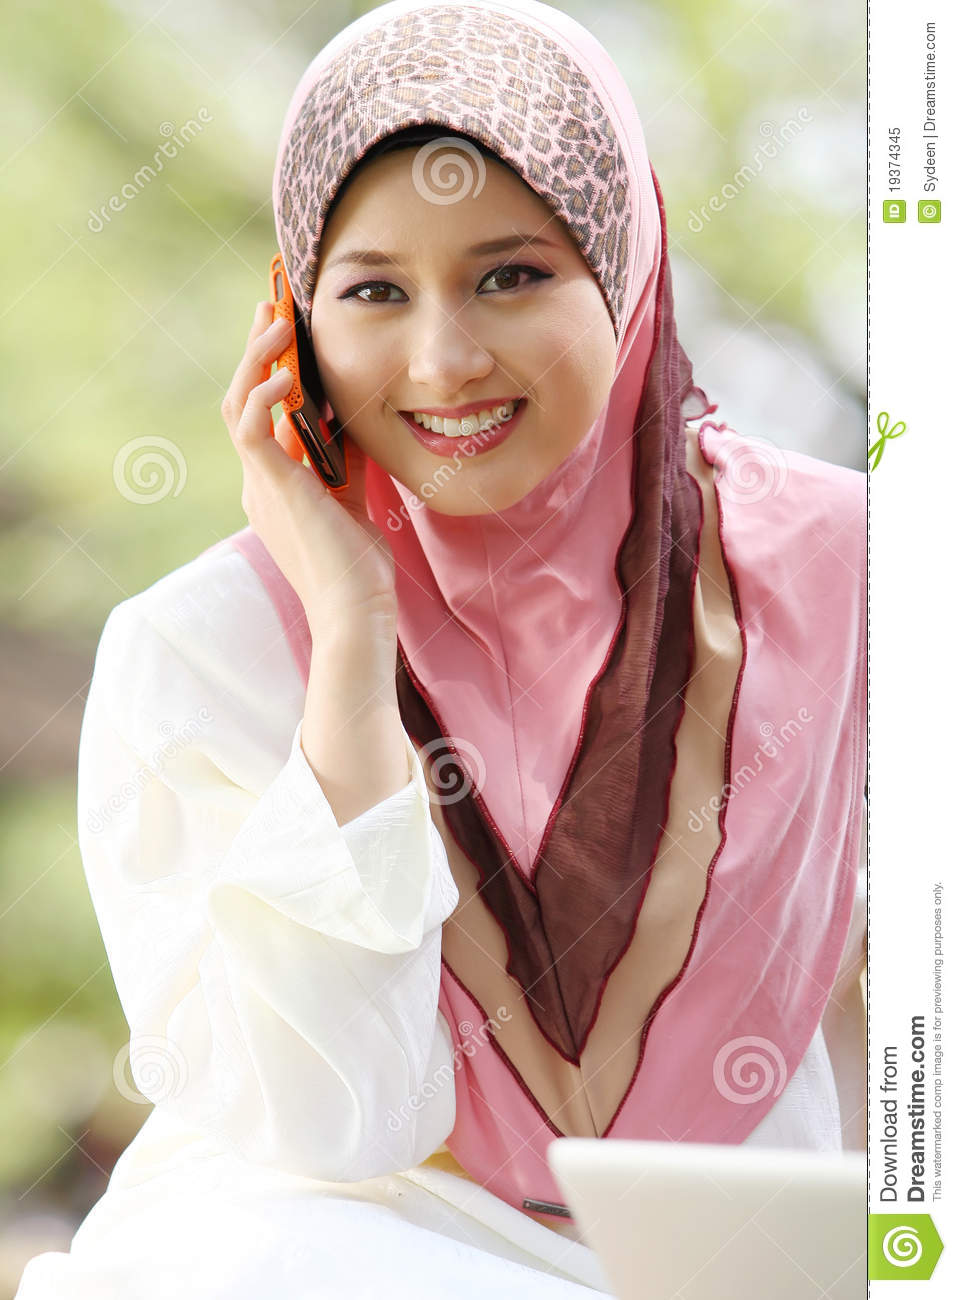 dow single muslim girls Get indian girls pictures and royalty-free images from istock find high-quality stock photos that you won't find anywhere else.